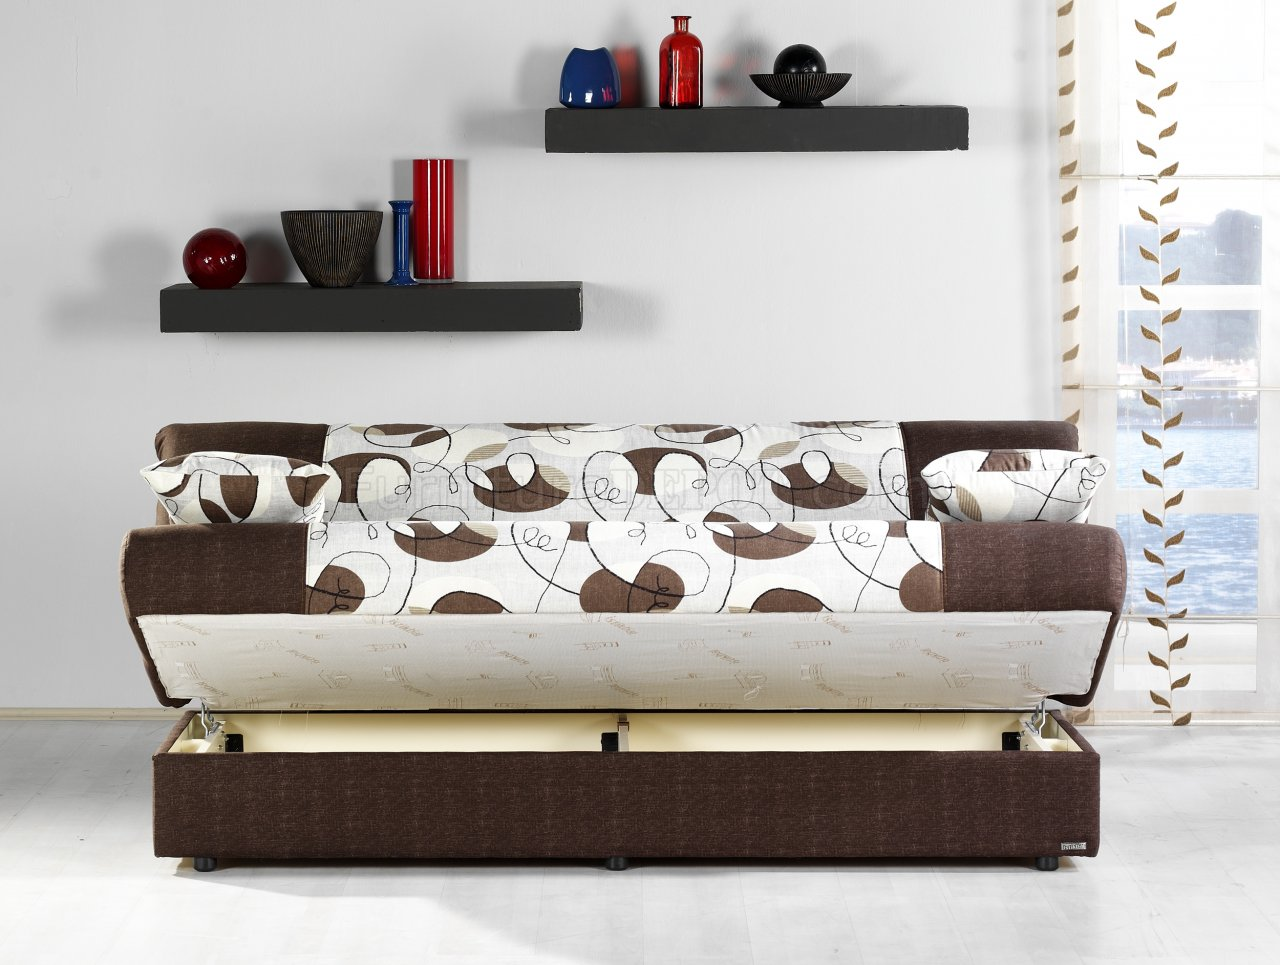 Regata Sofa Bed In Ceres Cream Amp Brown Fabric W Storage